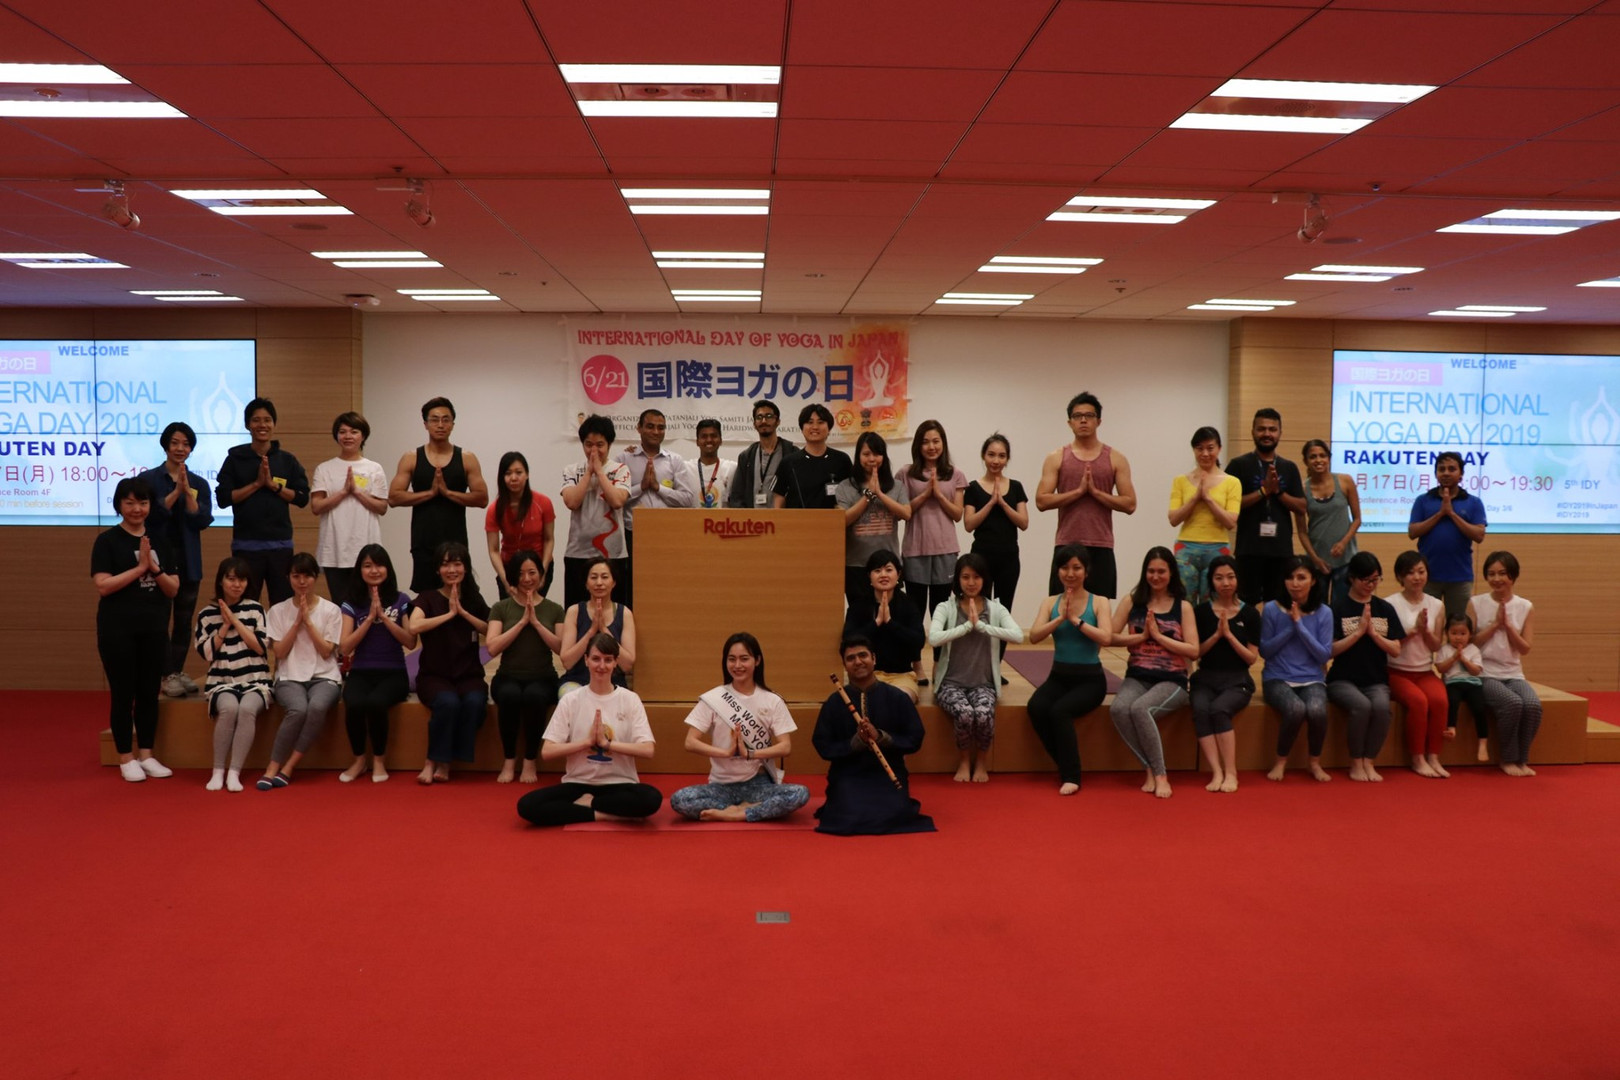 IDY 2019 at Rakuten Crimson House